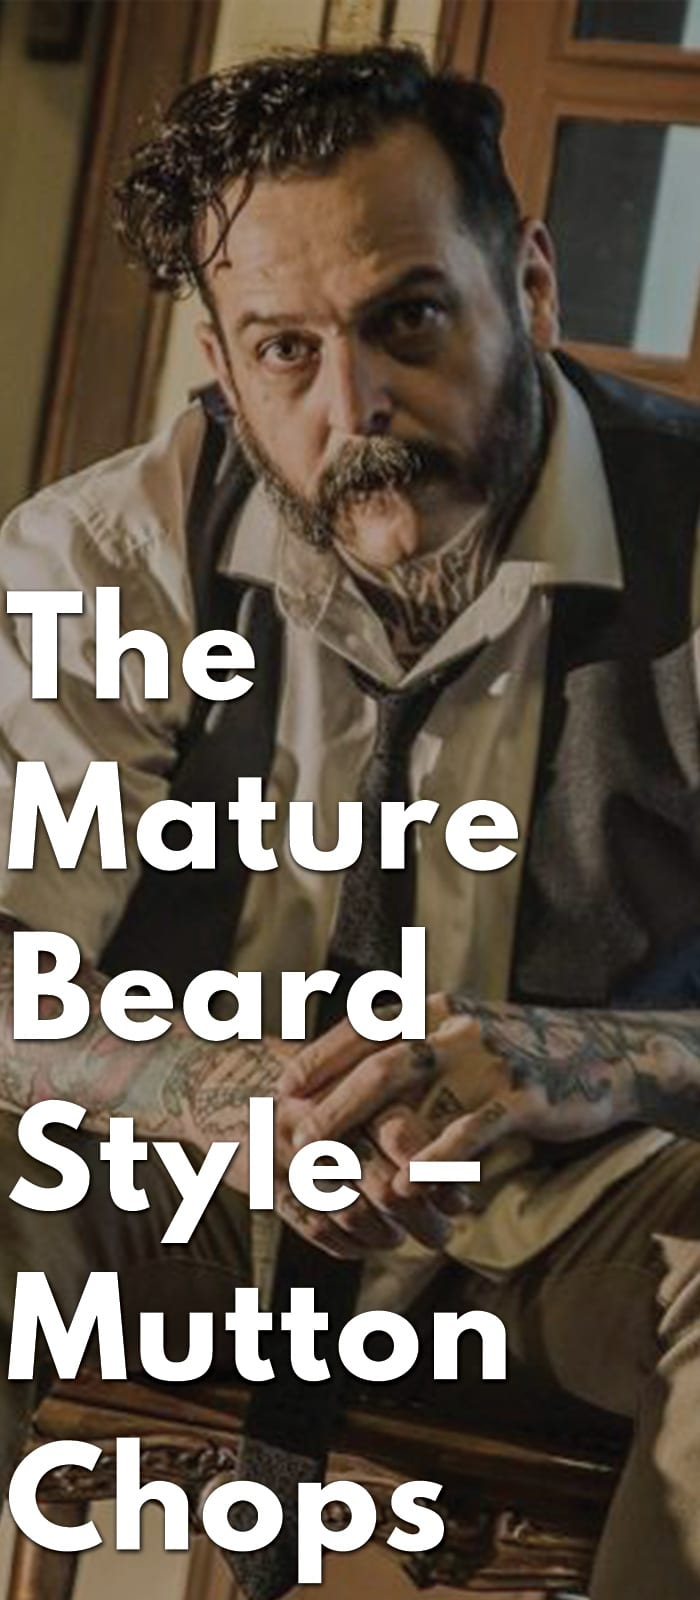 The-Mature-Beard-Style-–-Mutton-Chops.